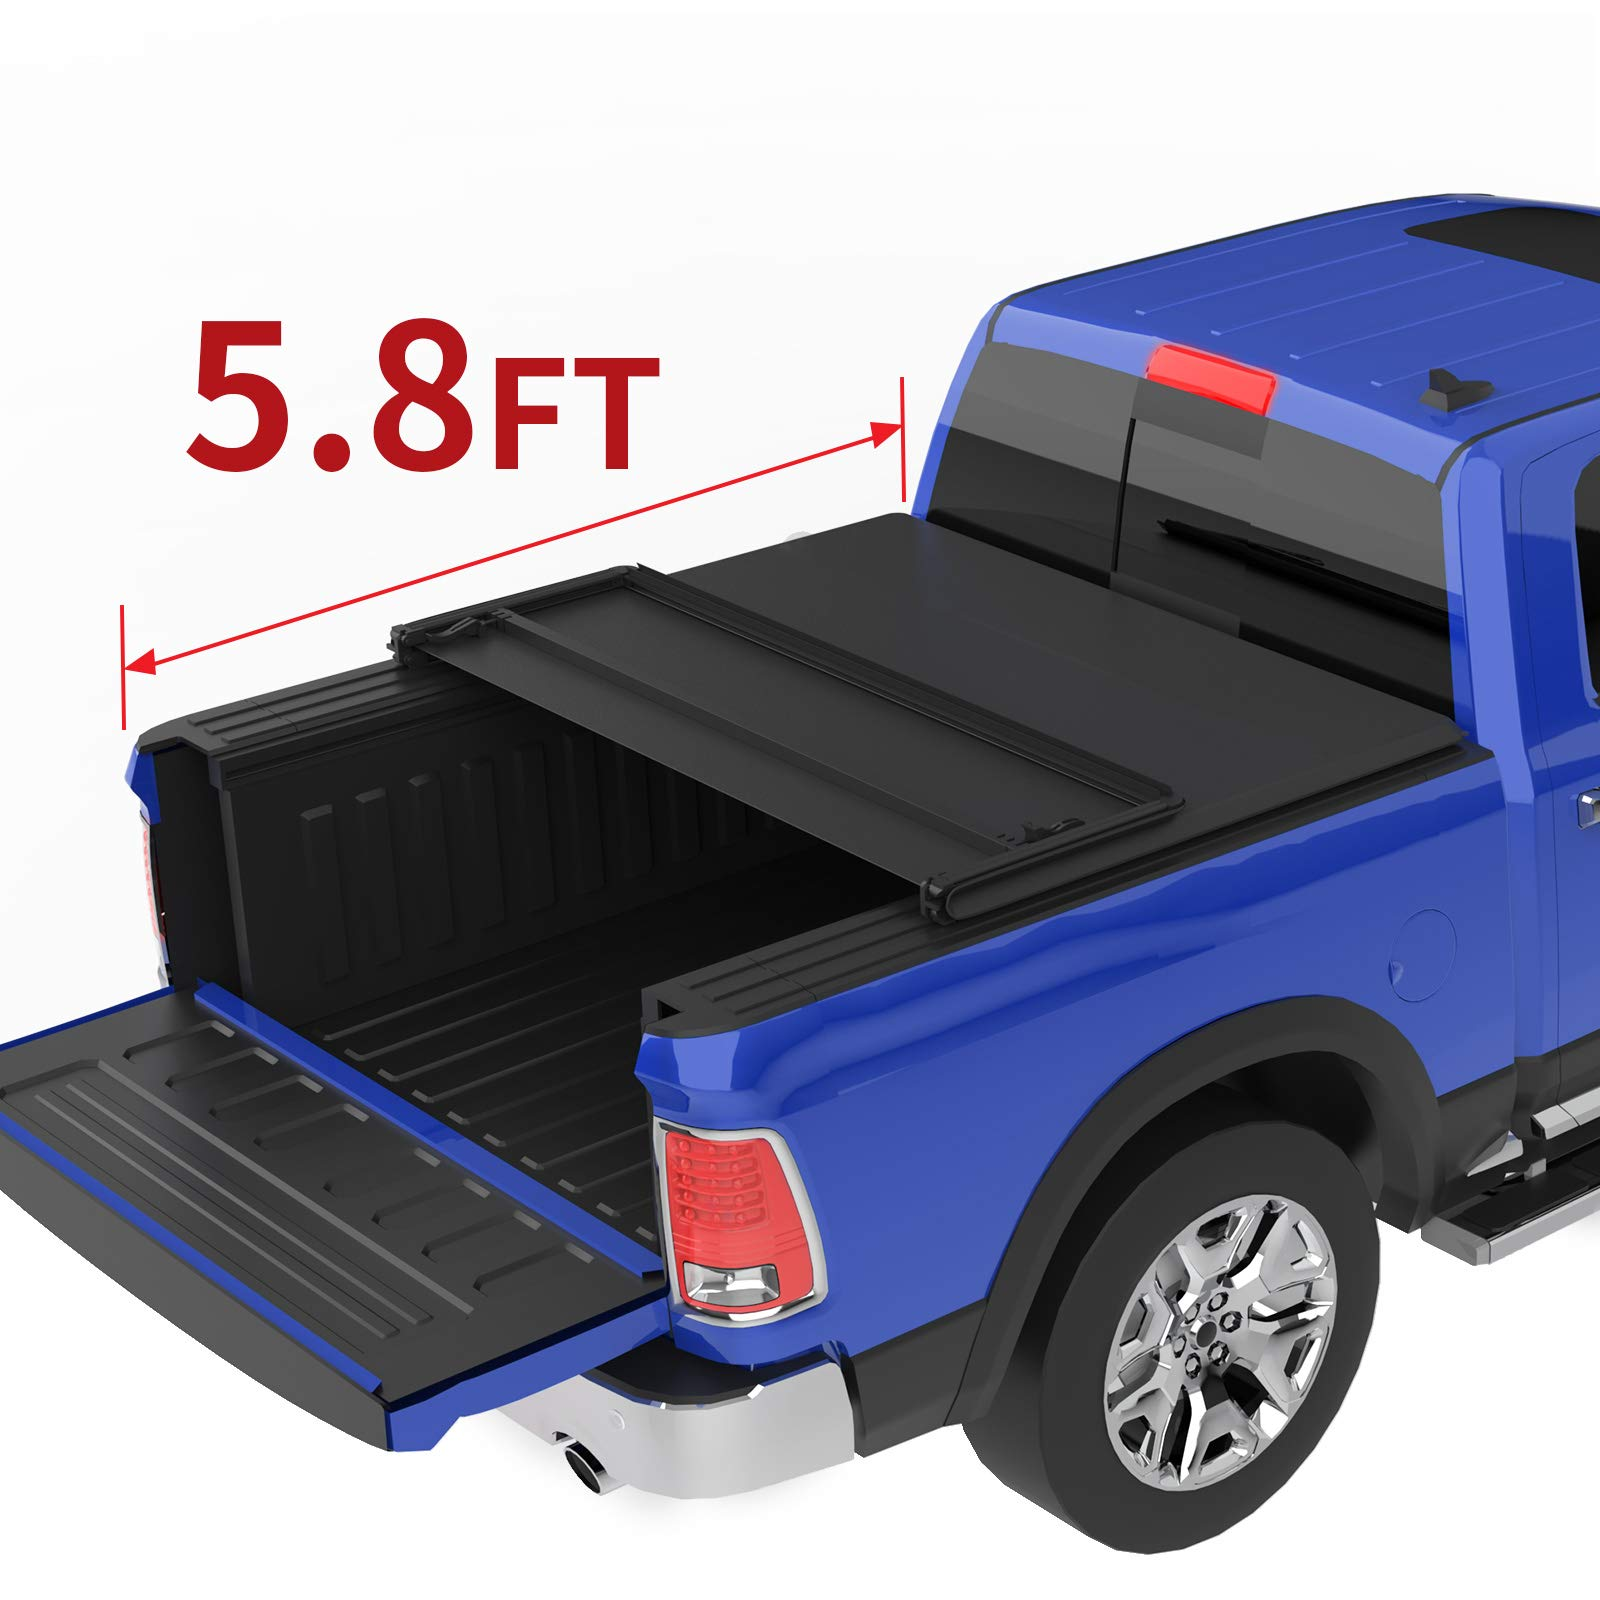 Oedro Tri Fold Truck Bed Tonneau Cover Compatible With 2009 2020 Dodge Ram 1500 Without Ram Box Fleetside 5 8 Feet Bed